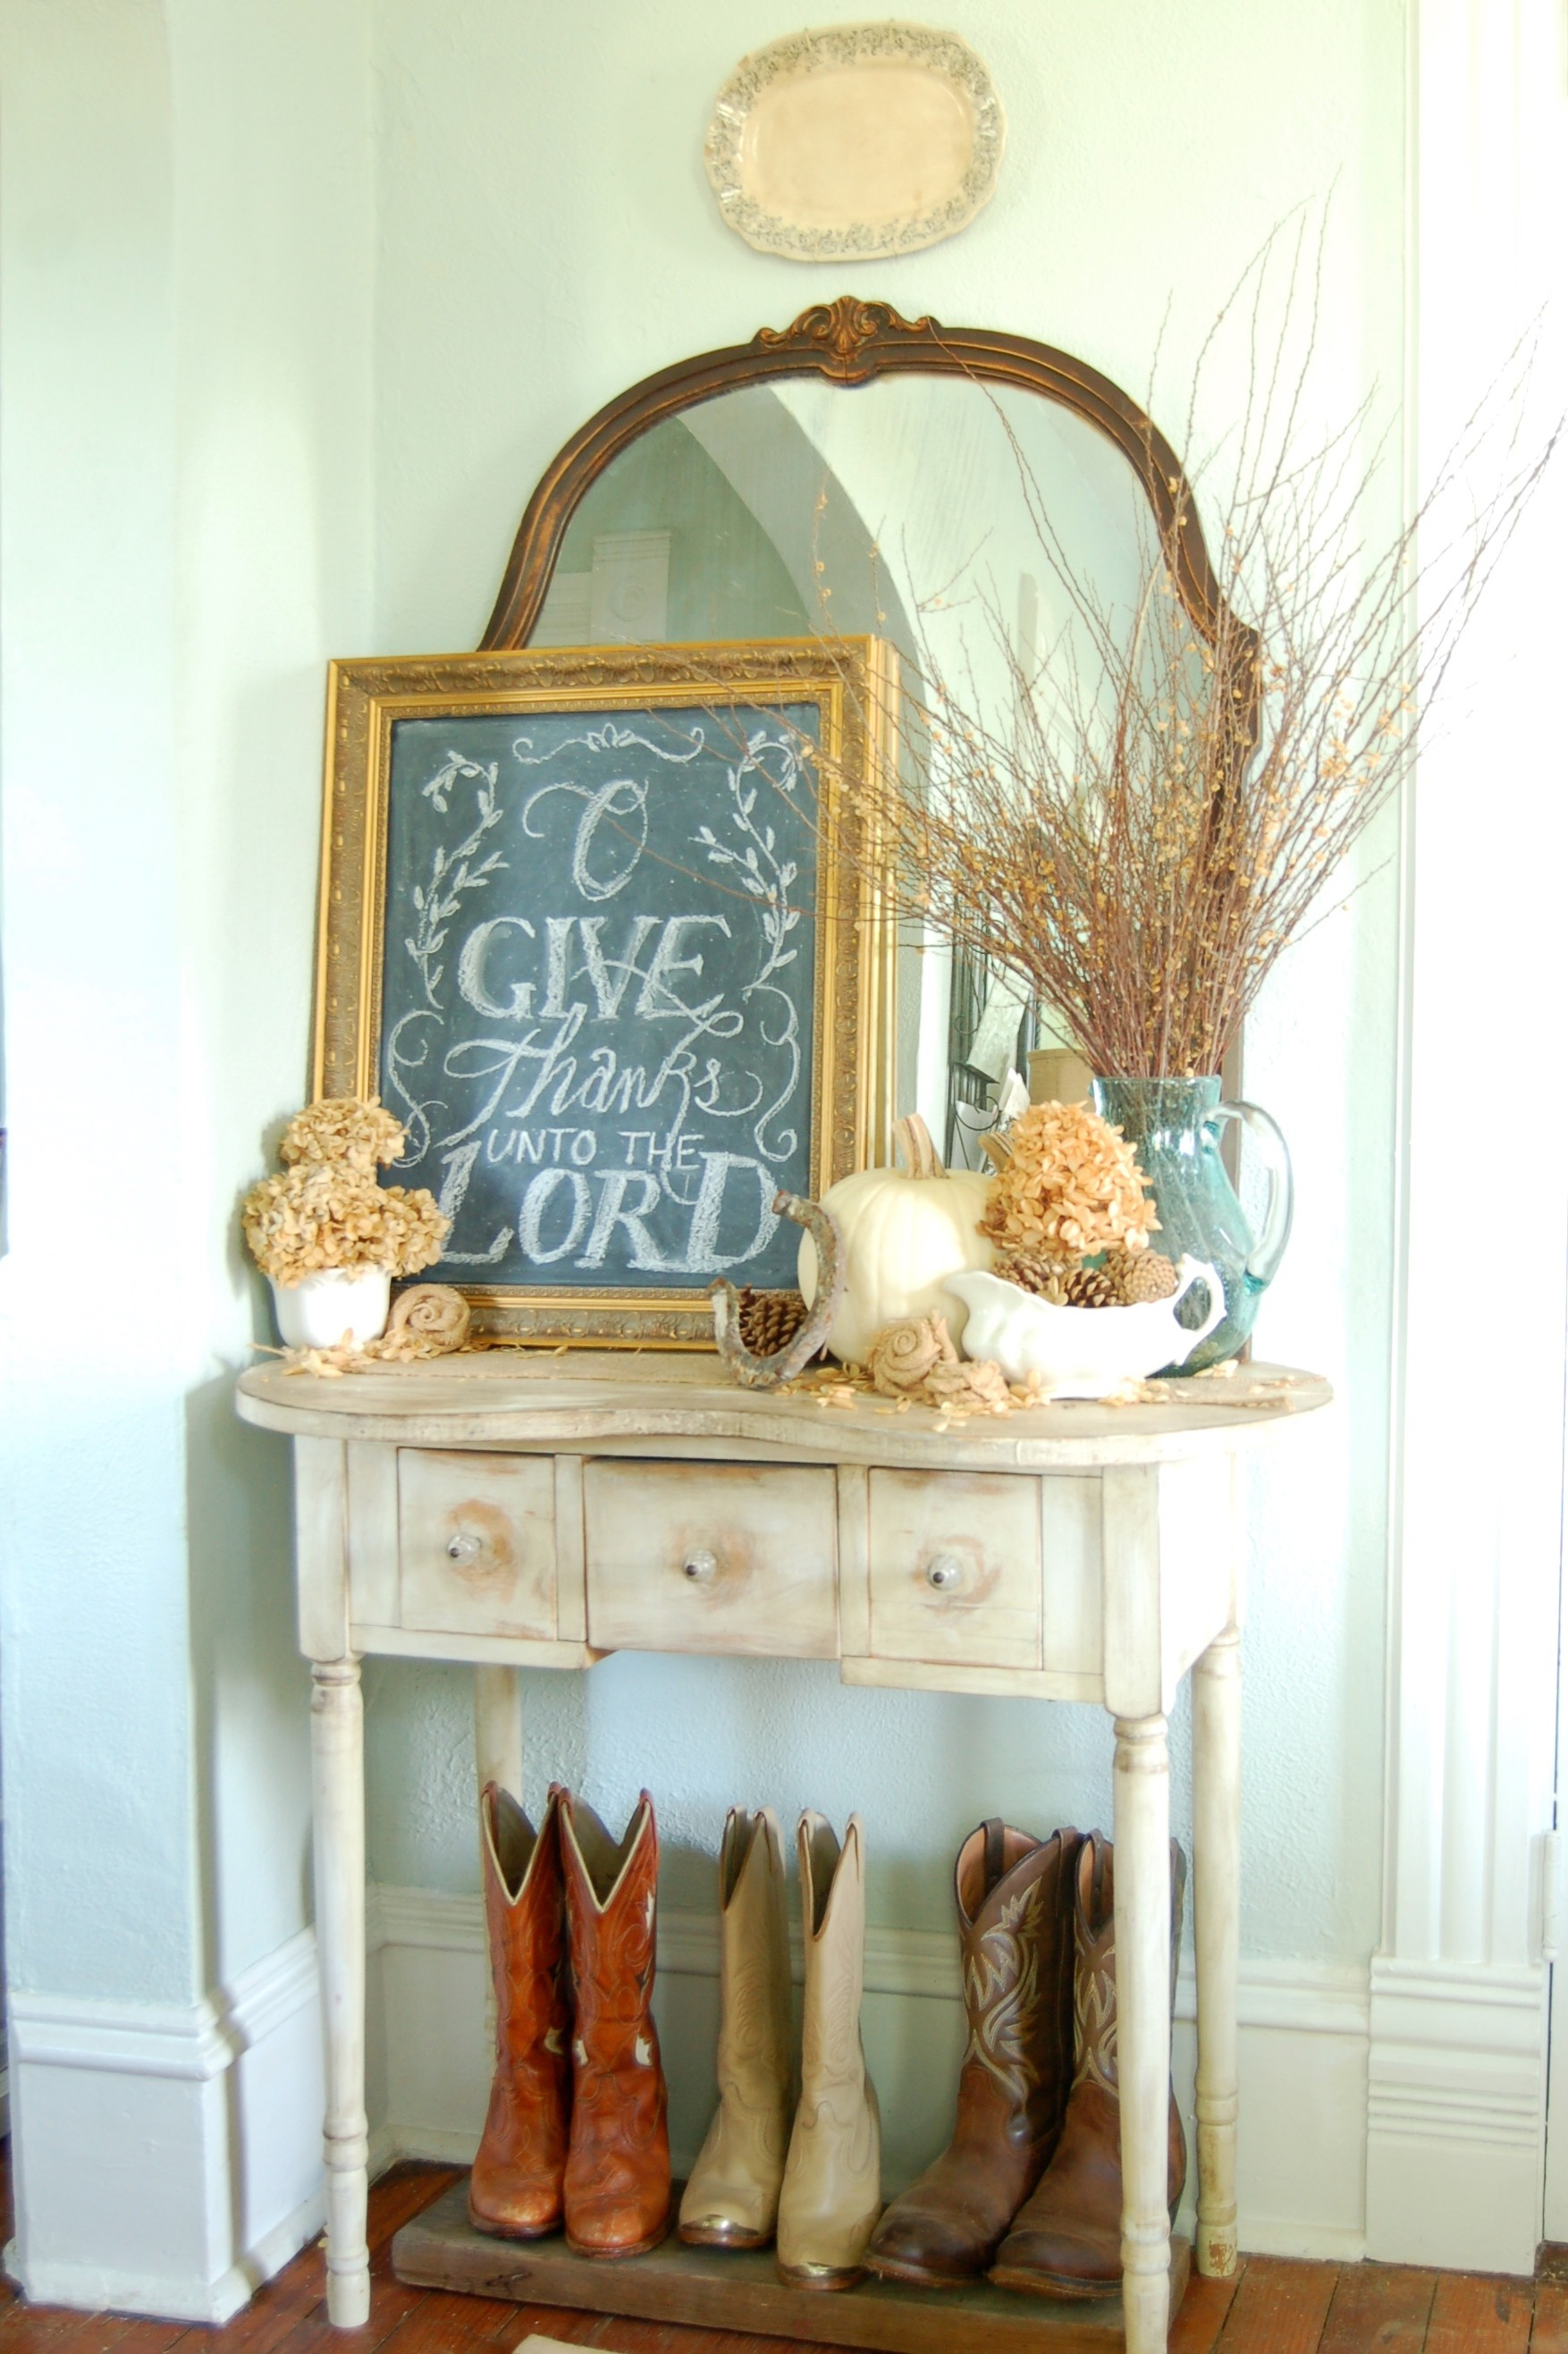 The First Thing That Greets Our Guests At The Farmhouse Is This Scripture  Verse In Our Entry. The Small Table Is A Great Landing Place For Keys And  For ...